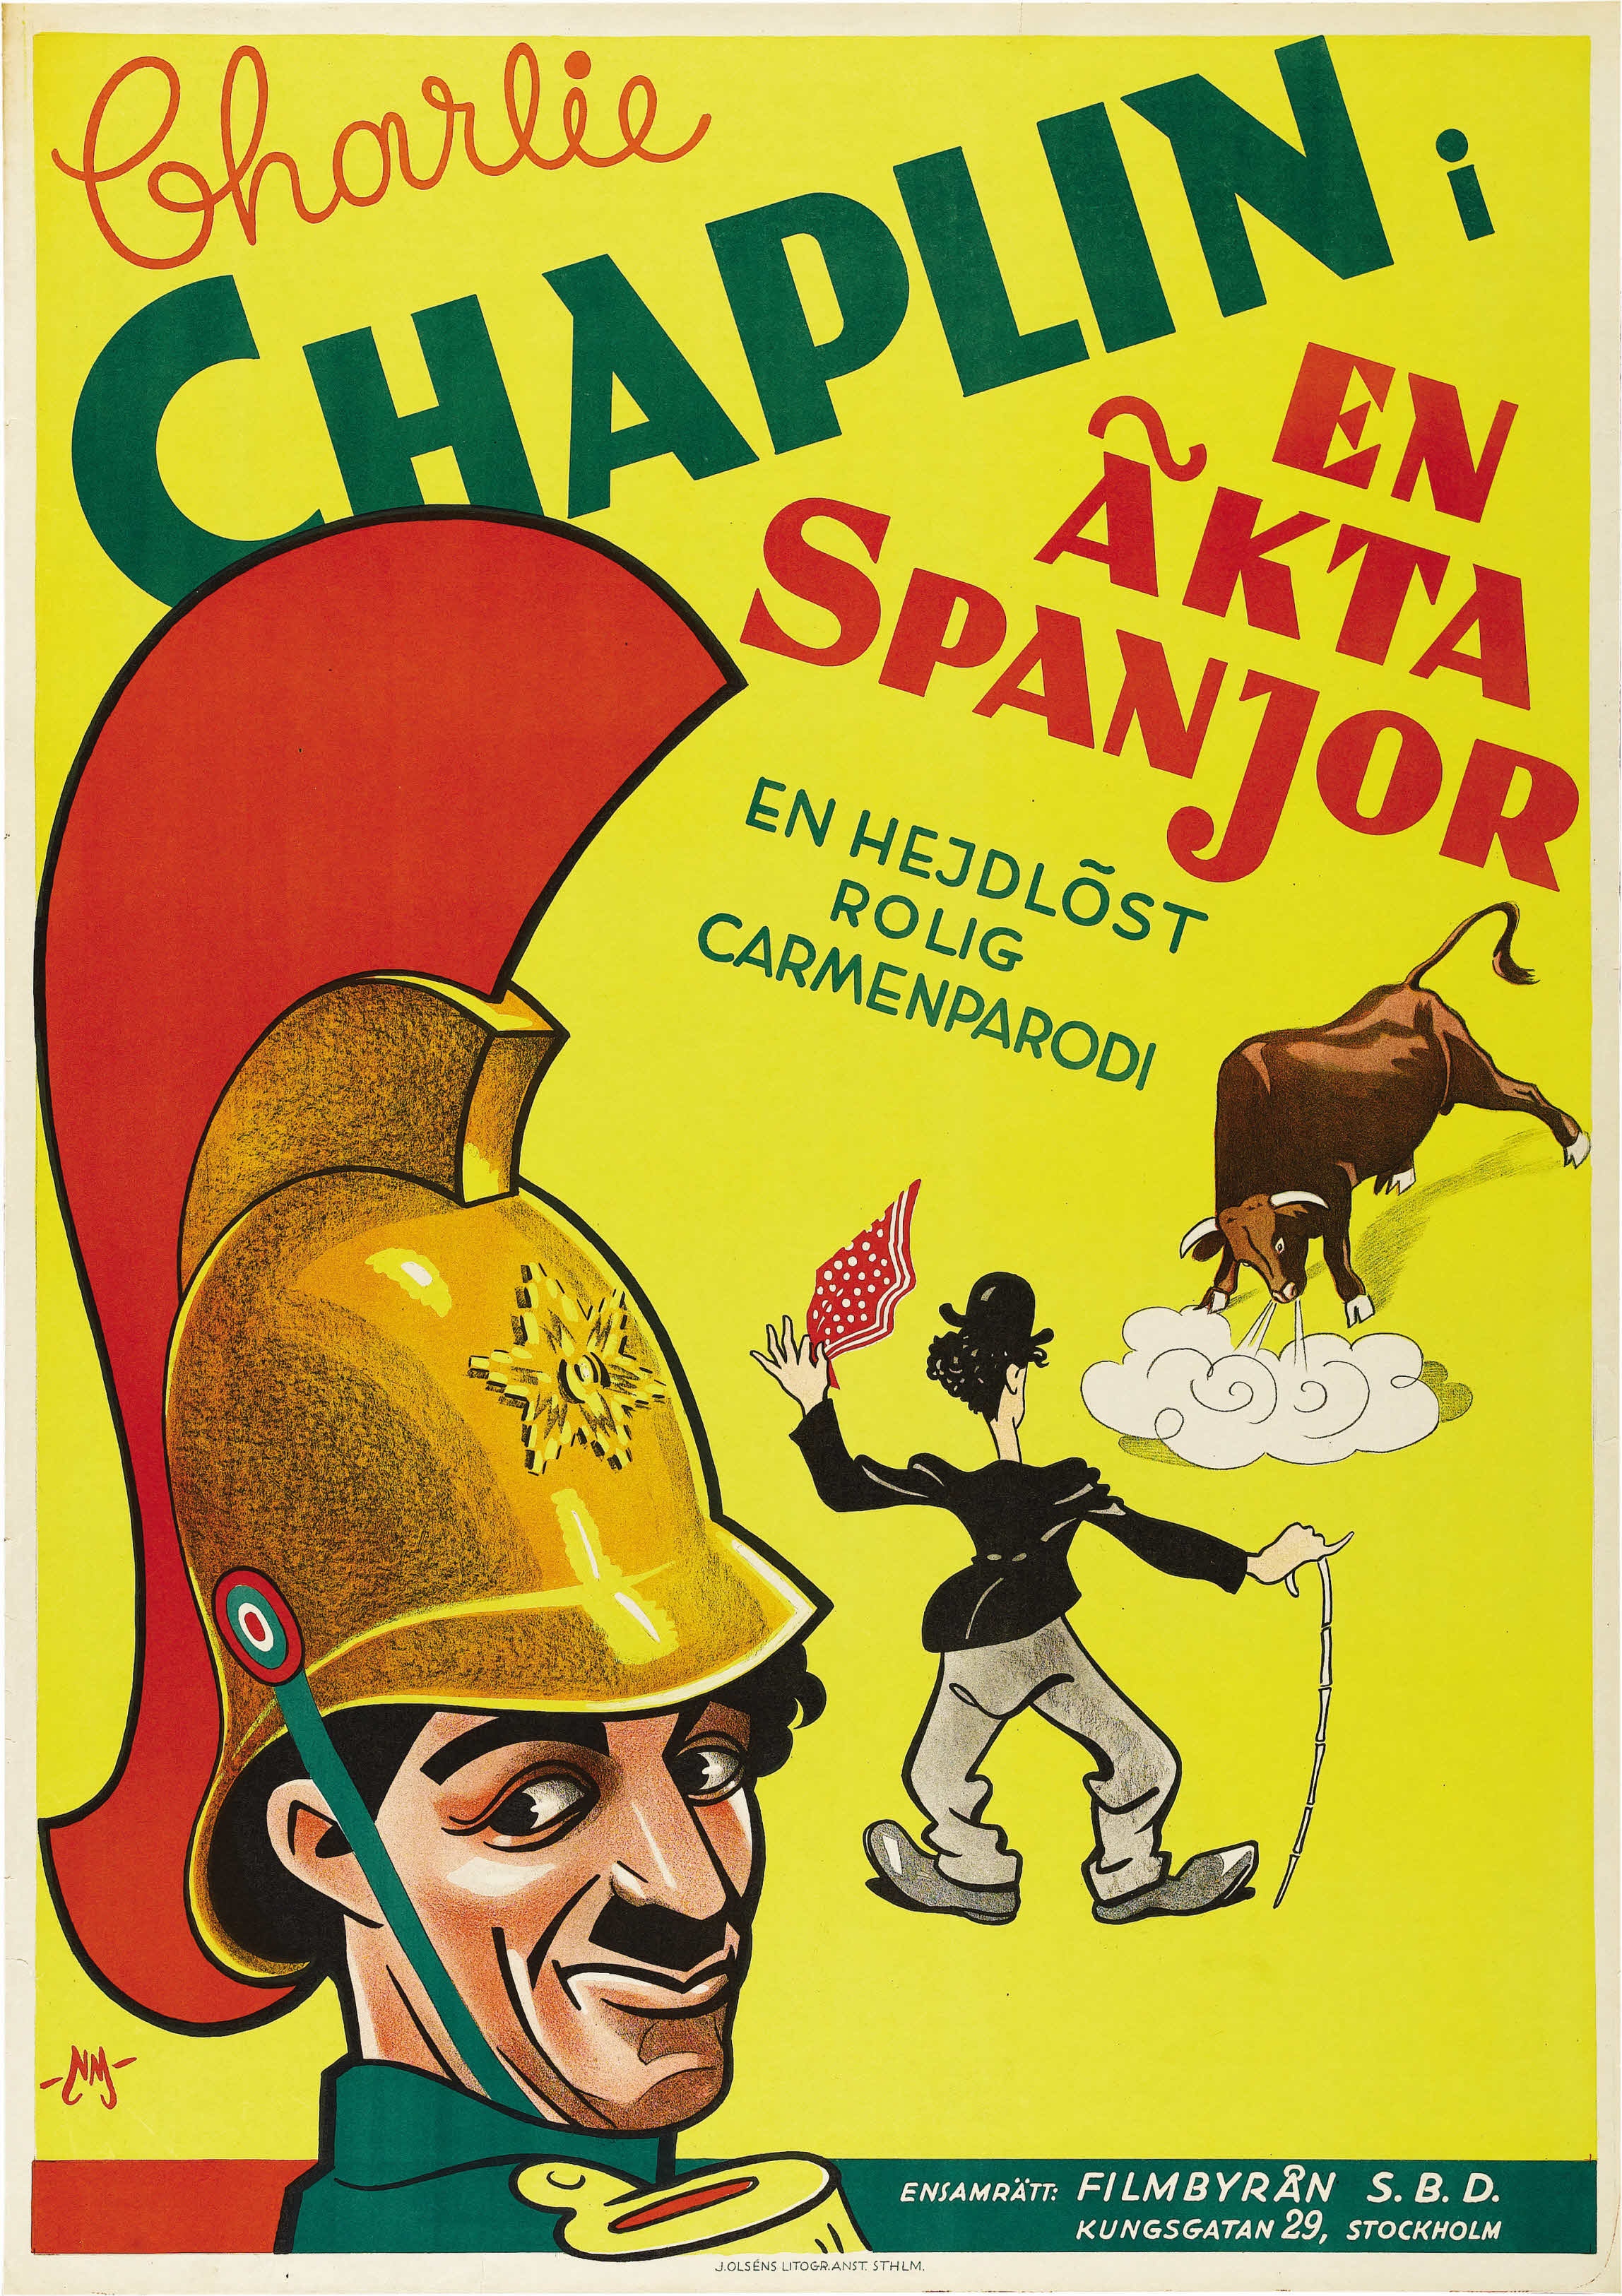 A Burlesque on Carmen aka En äkta spanjor (A spanish guard, 1915) Swedish 1933 sound reissue poster